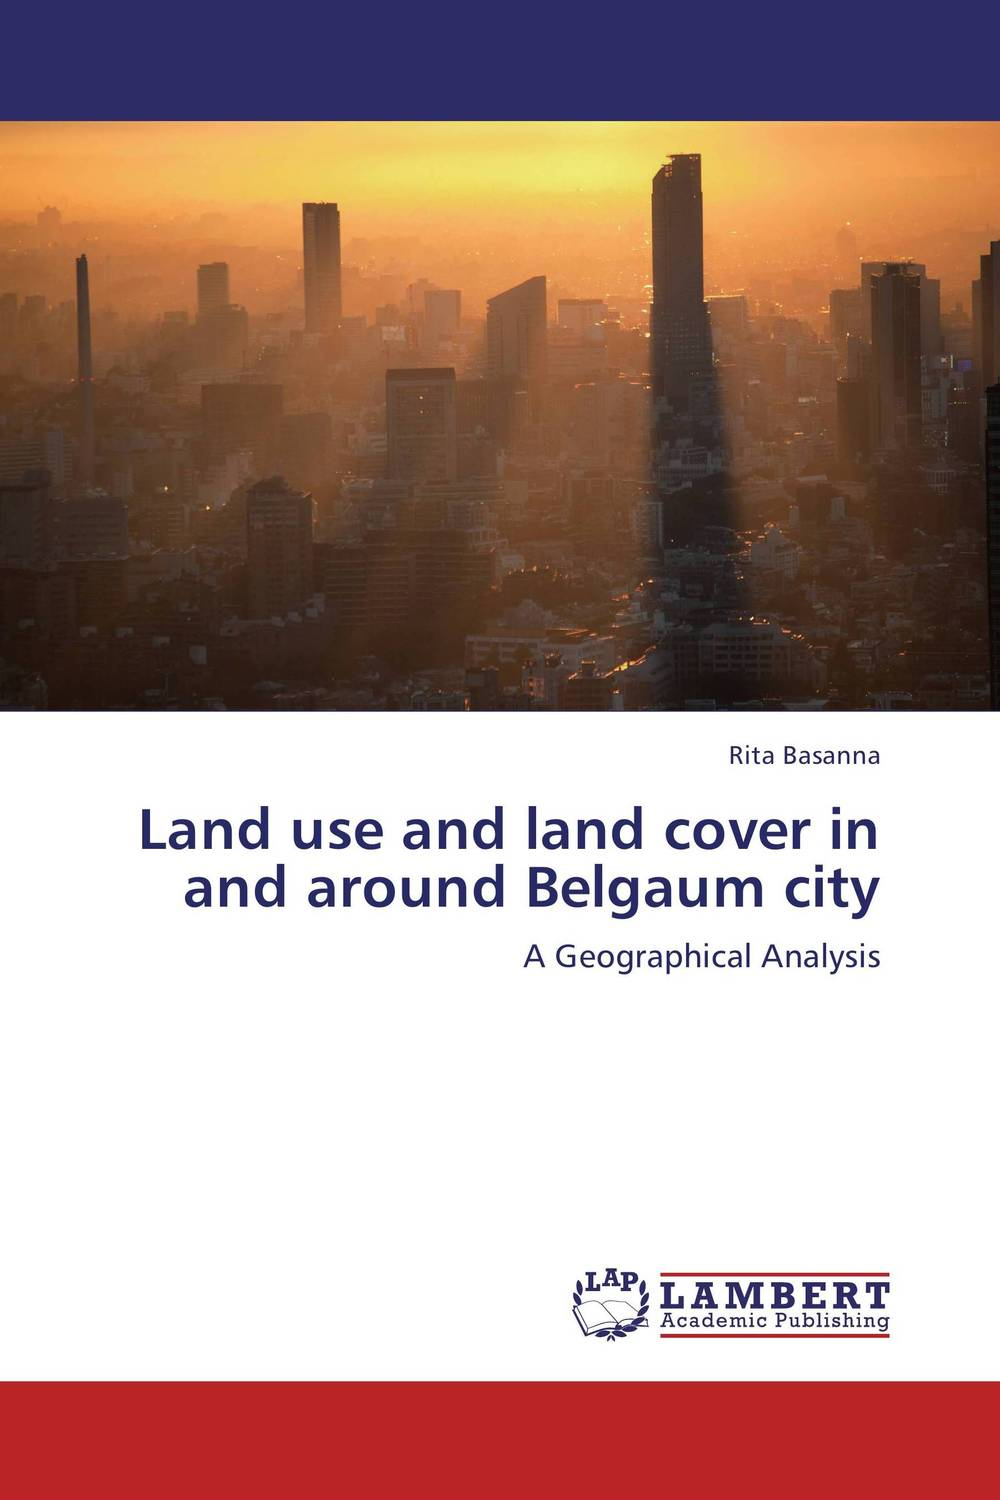 Land use and land cover in and around Belgaum city